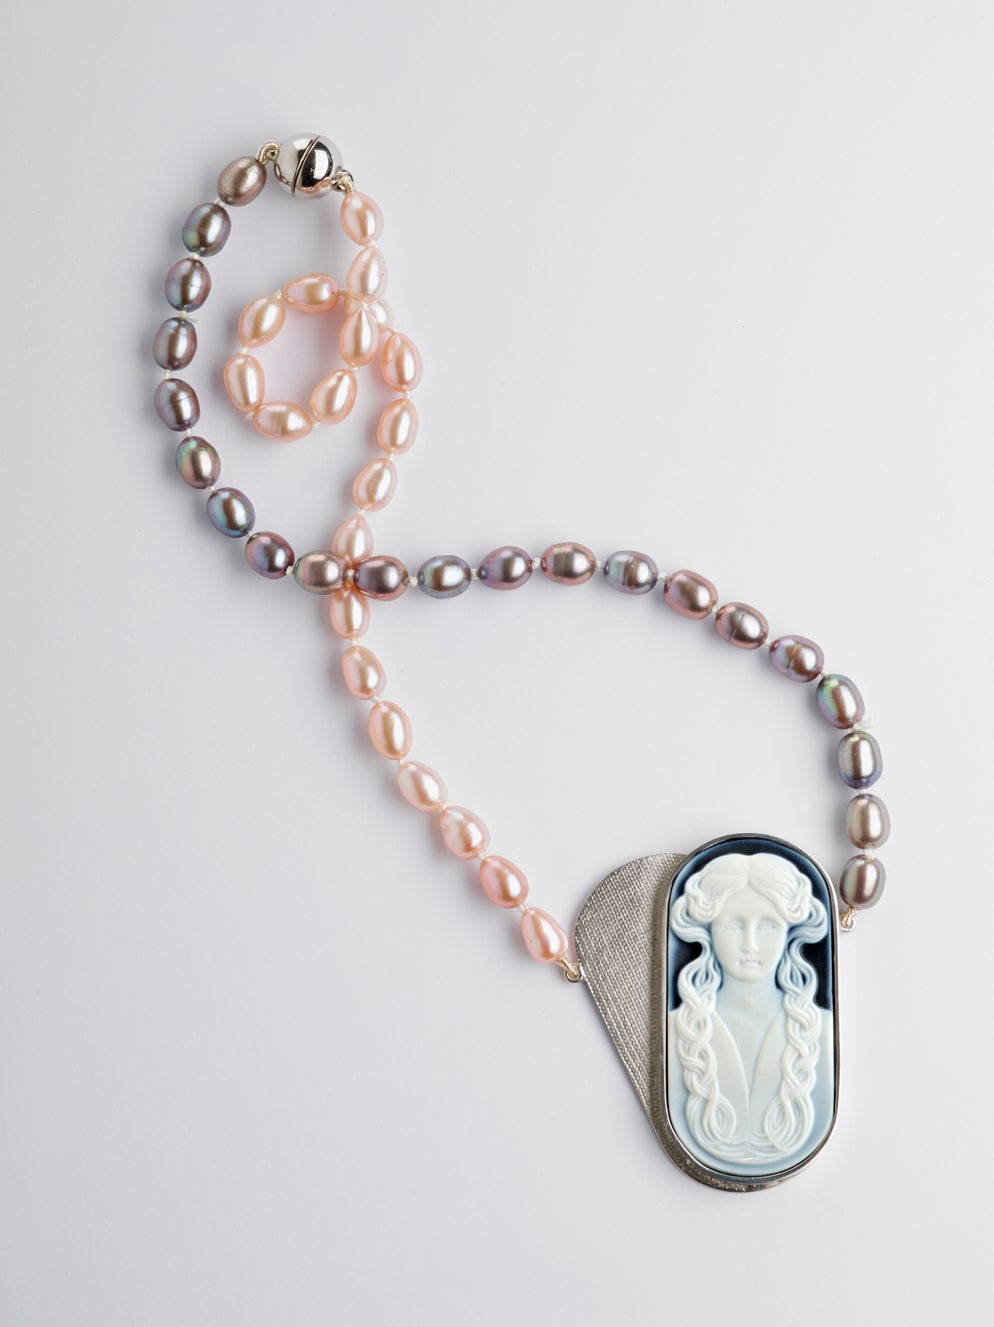 Image of Précieuses envies necklace with onyx cameo and pearls - halsketting in zilver parels en camee